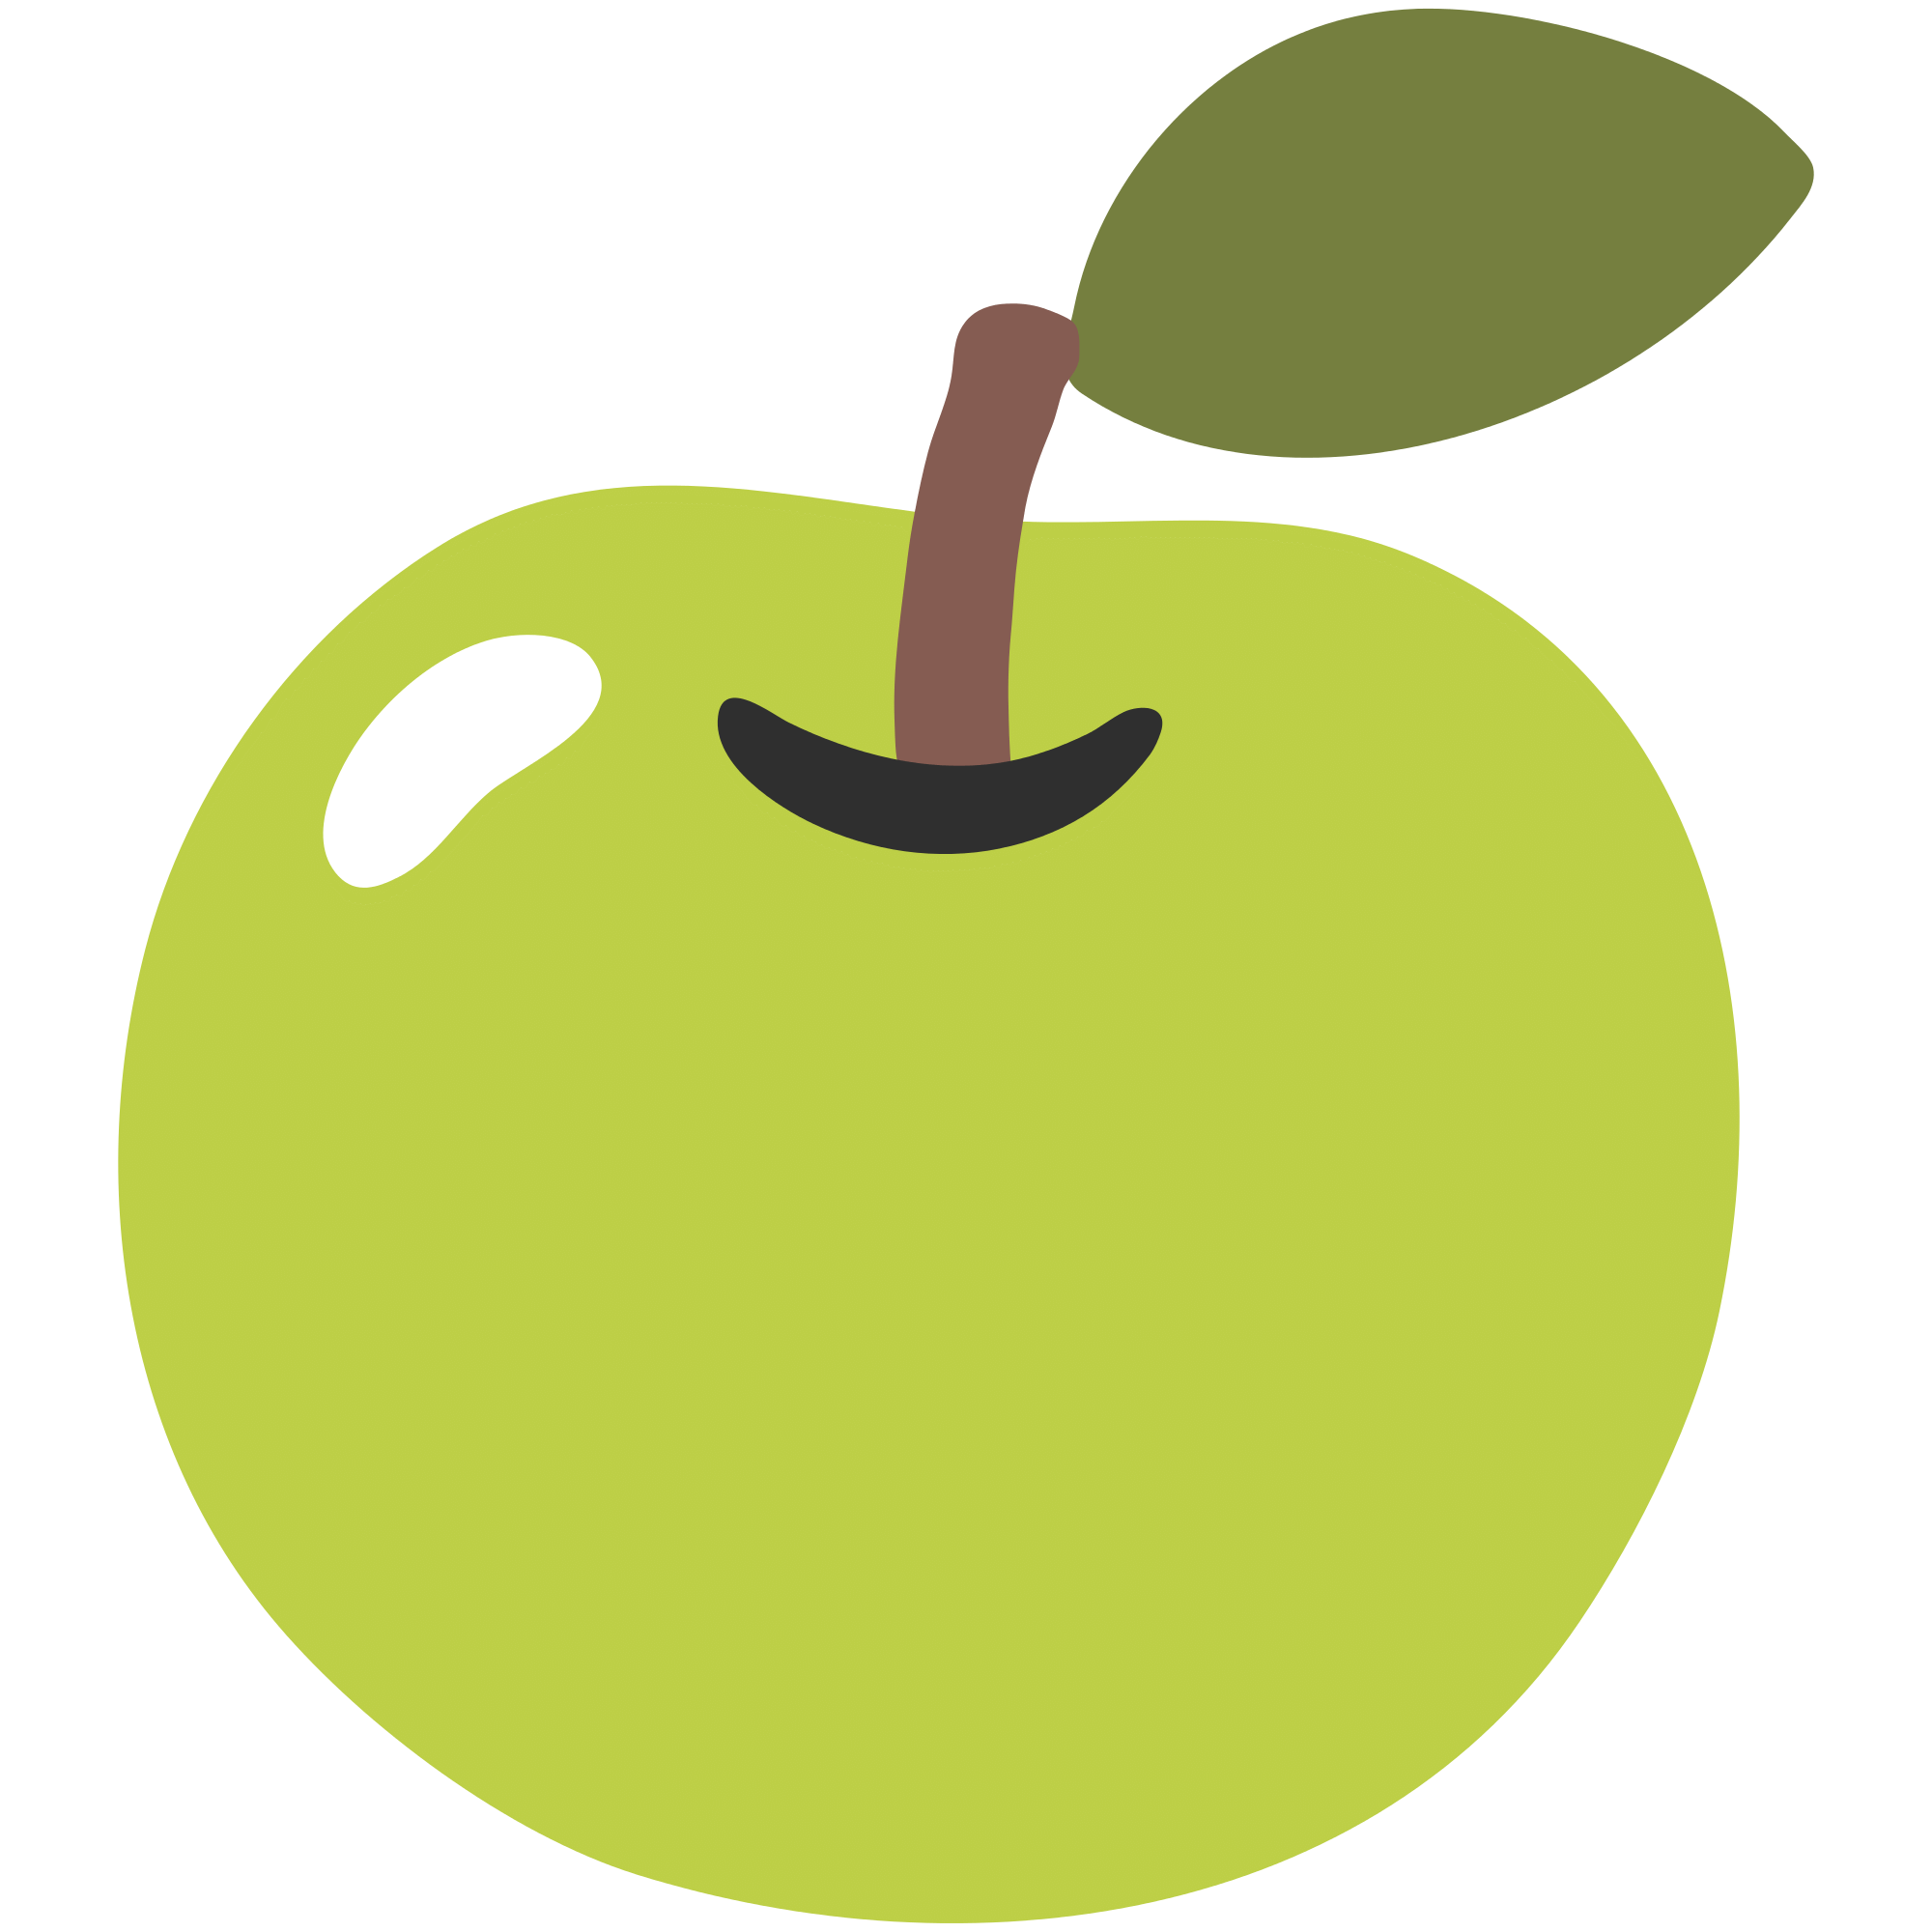 Apple emojis clipart vector free stock Emoji Apple transparent PNG - StickPNG vector free stock